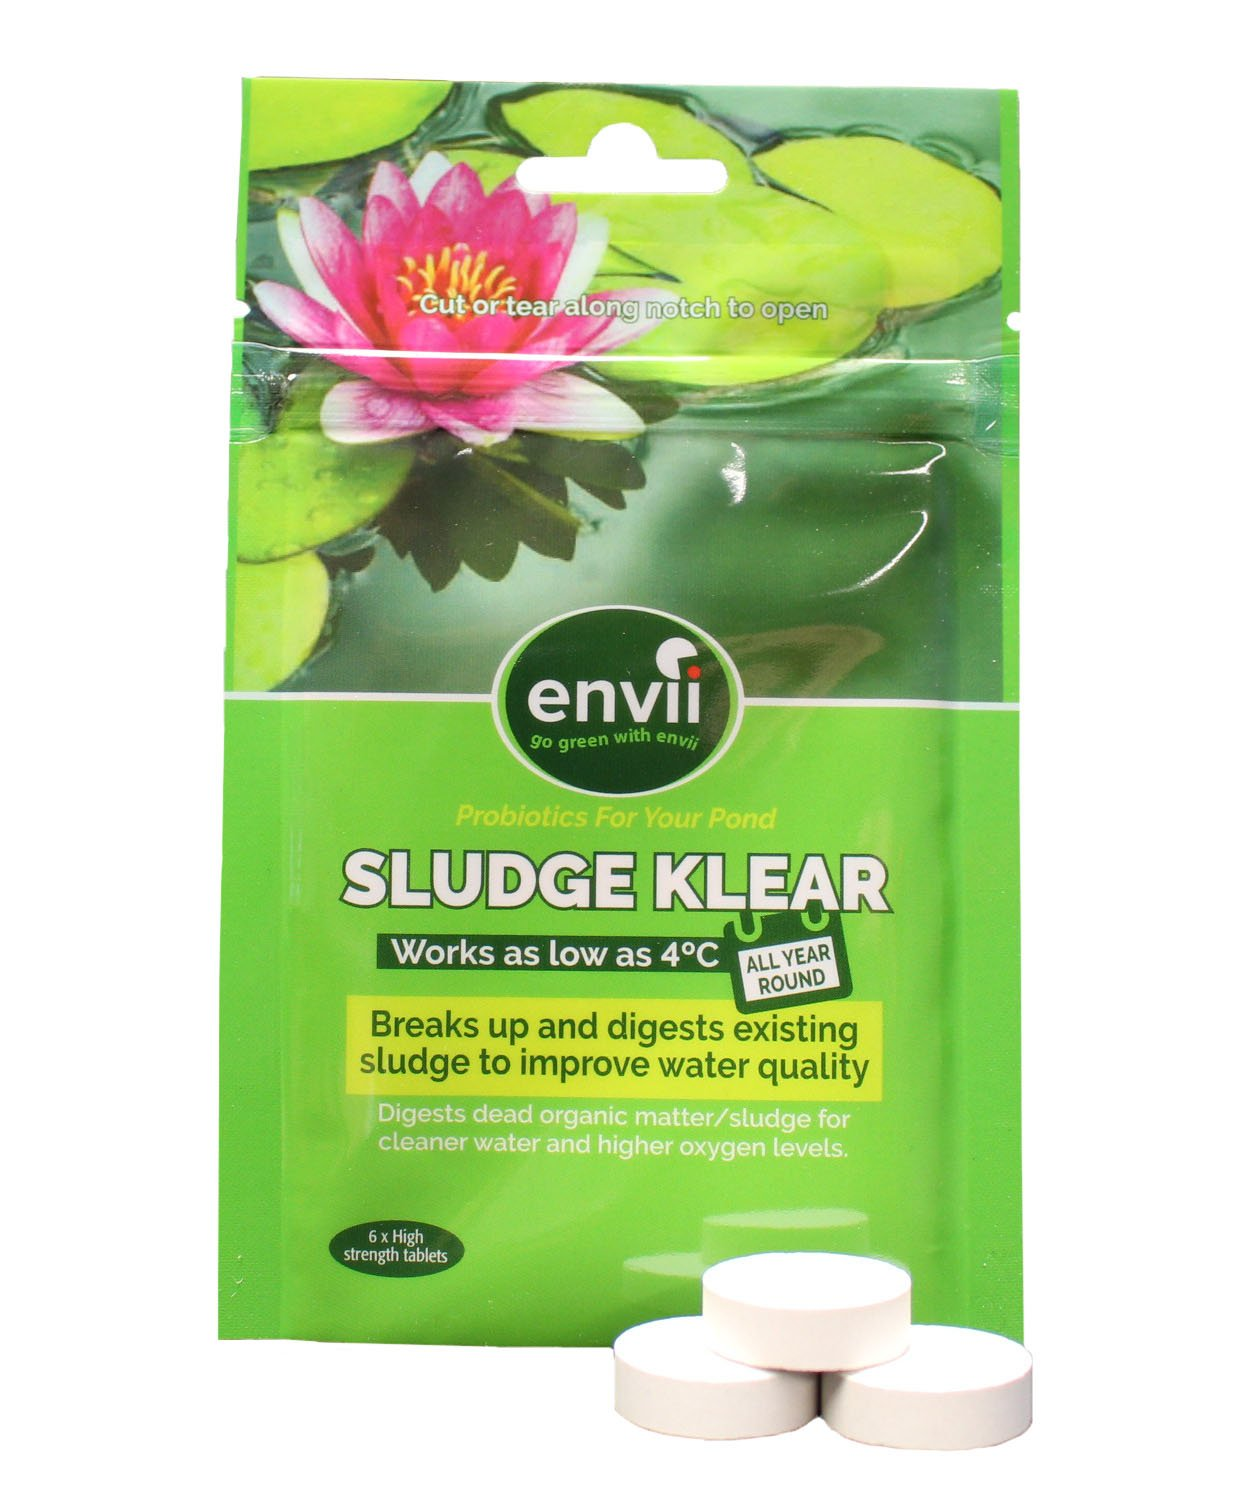 Envii Sludge Klear - Pond Sludge Treatment, Clears Murky Water & Removes Sludge Down to 40F - (Treats Up To 8,000 Gallons)